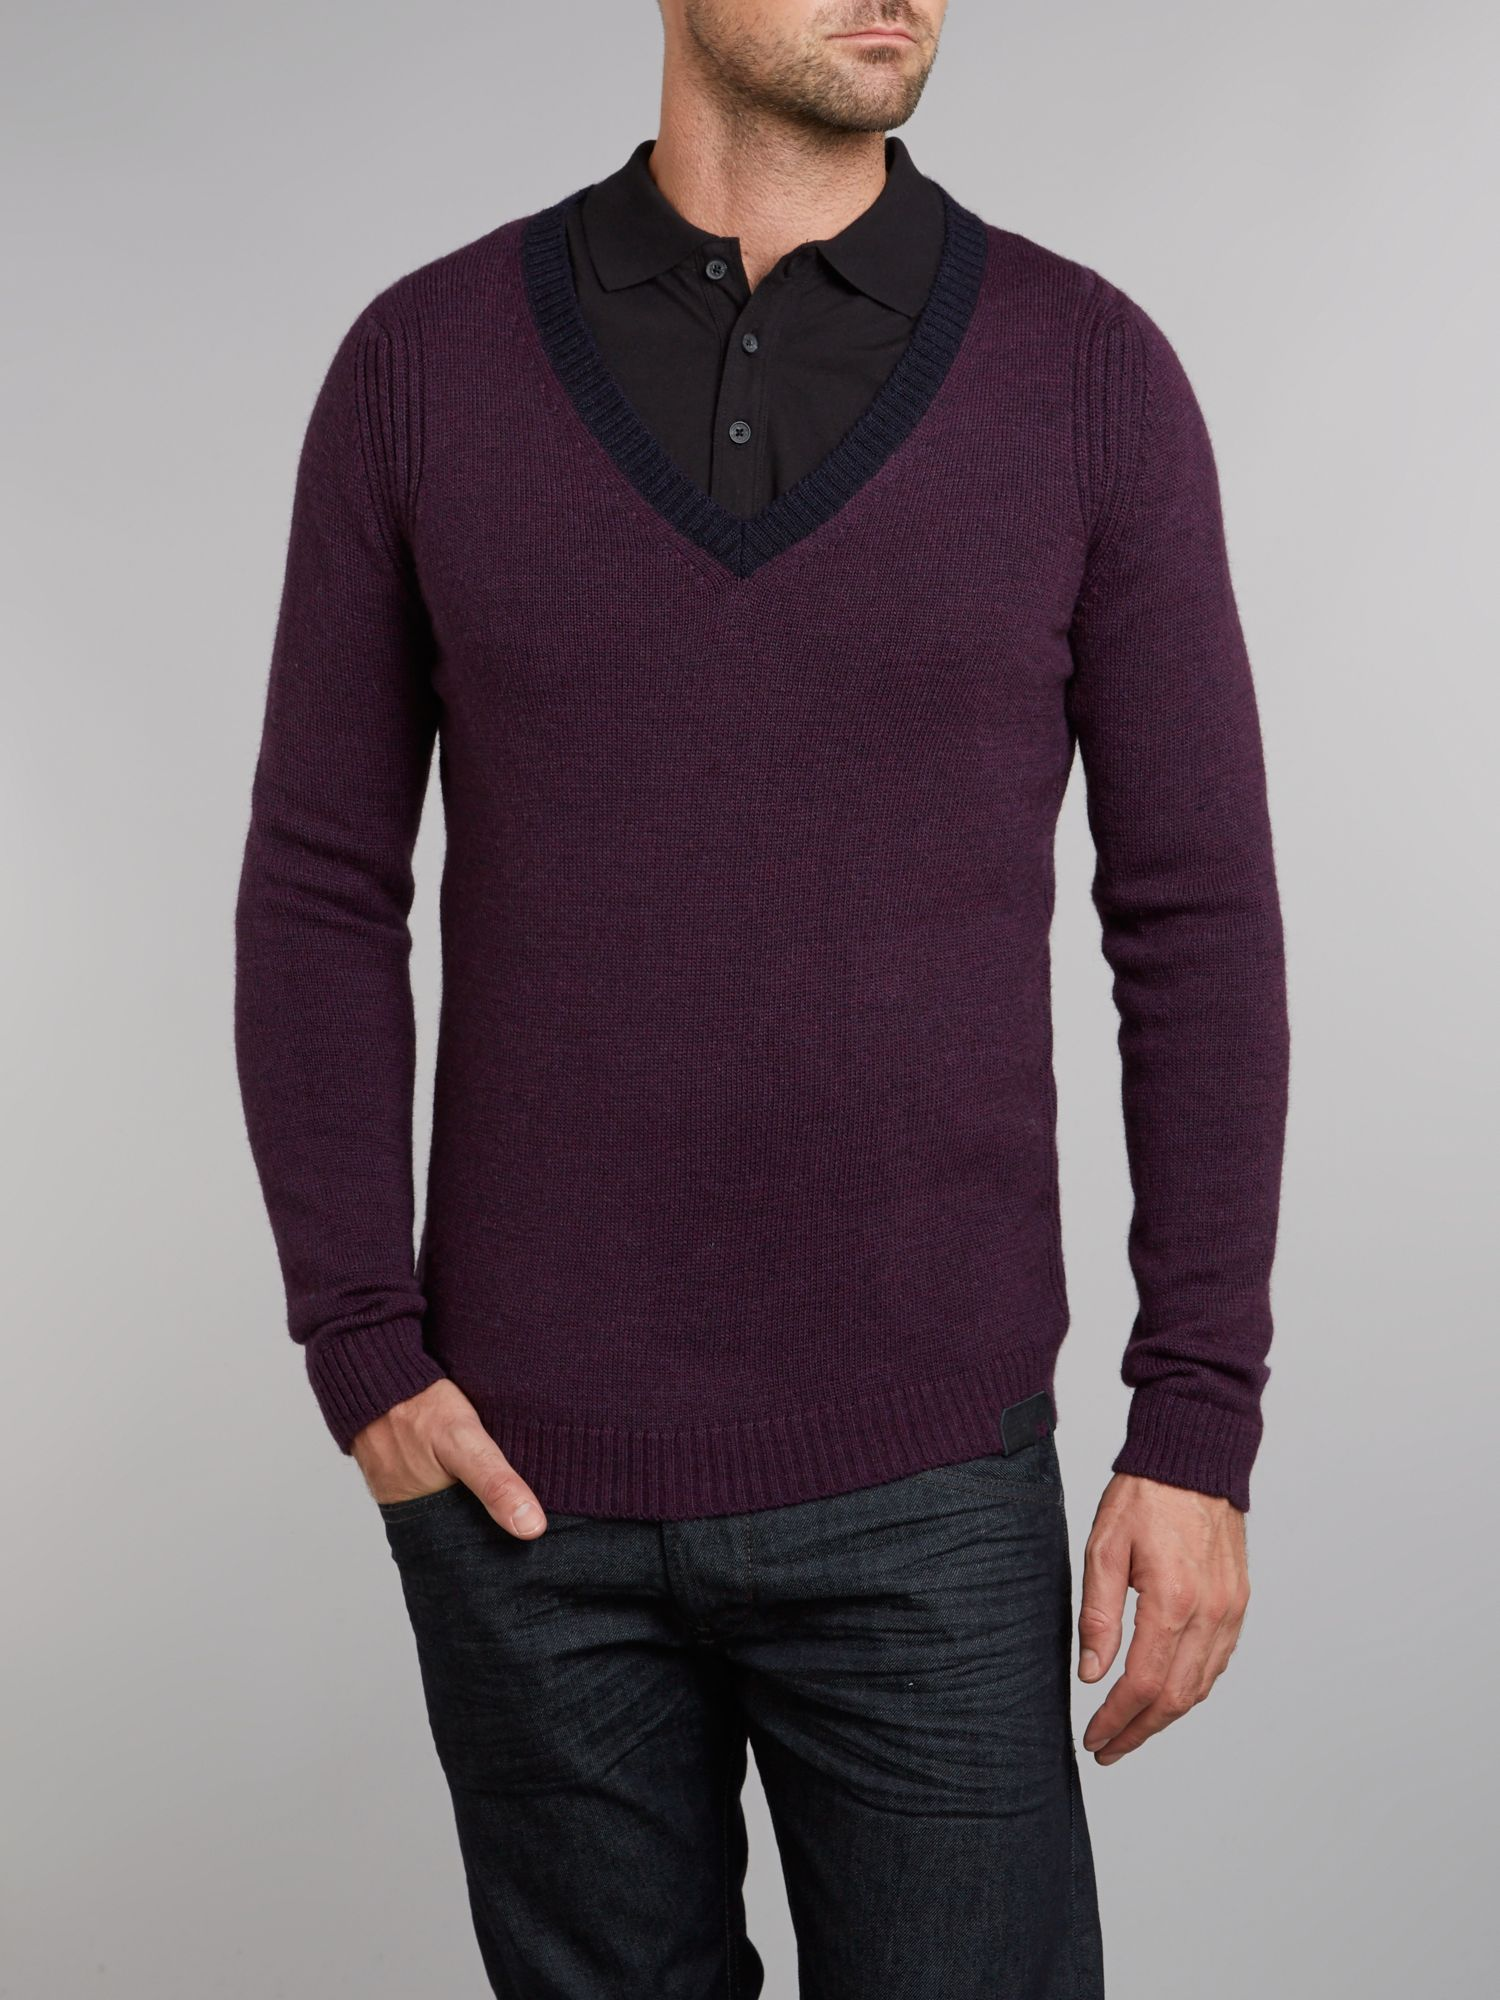 Vee neck knit